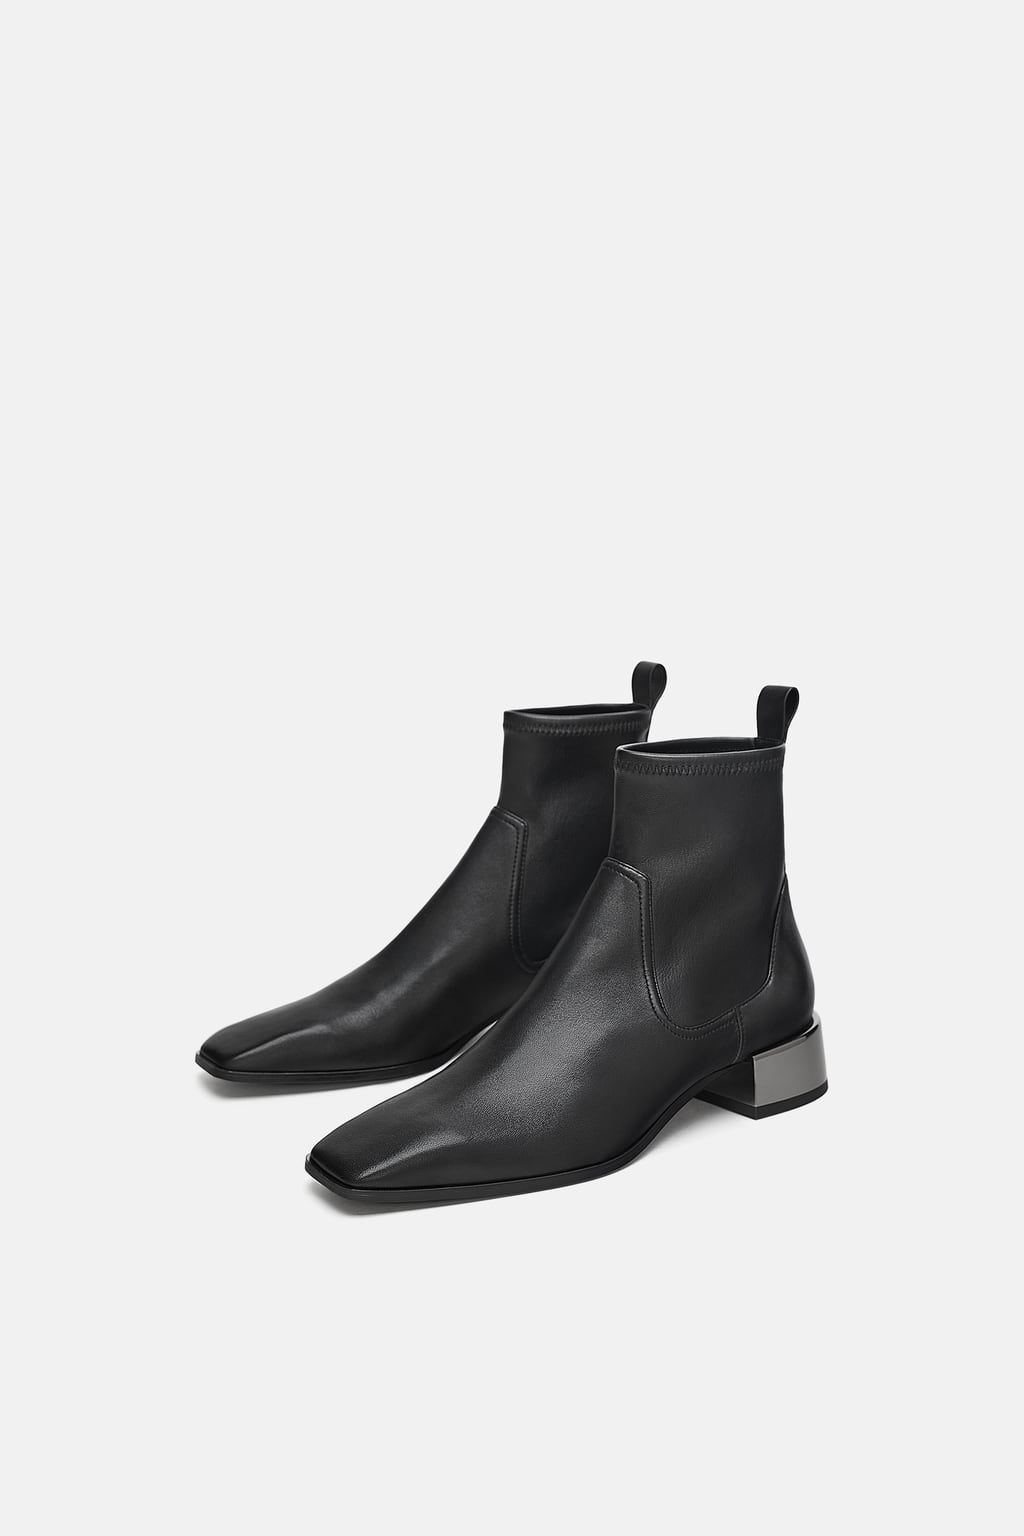 f18020af9d0 Image 1 of LOW HEELED SQUARE TOE LEATHER ANKLE BOOTS from Zara